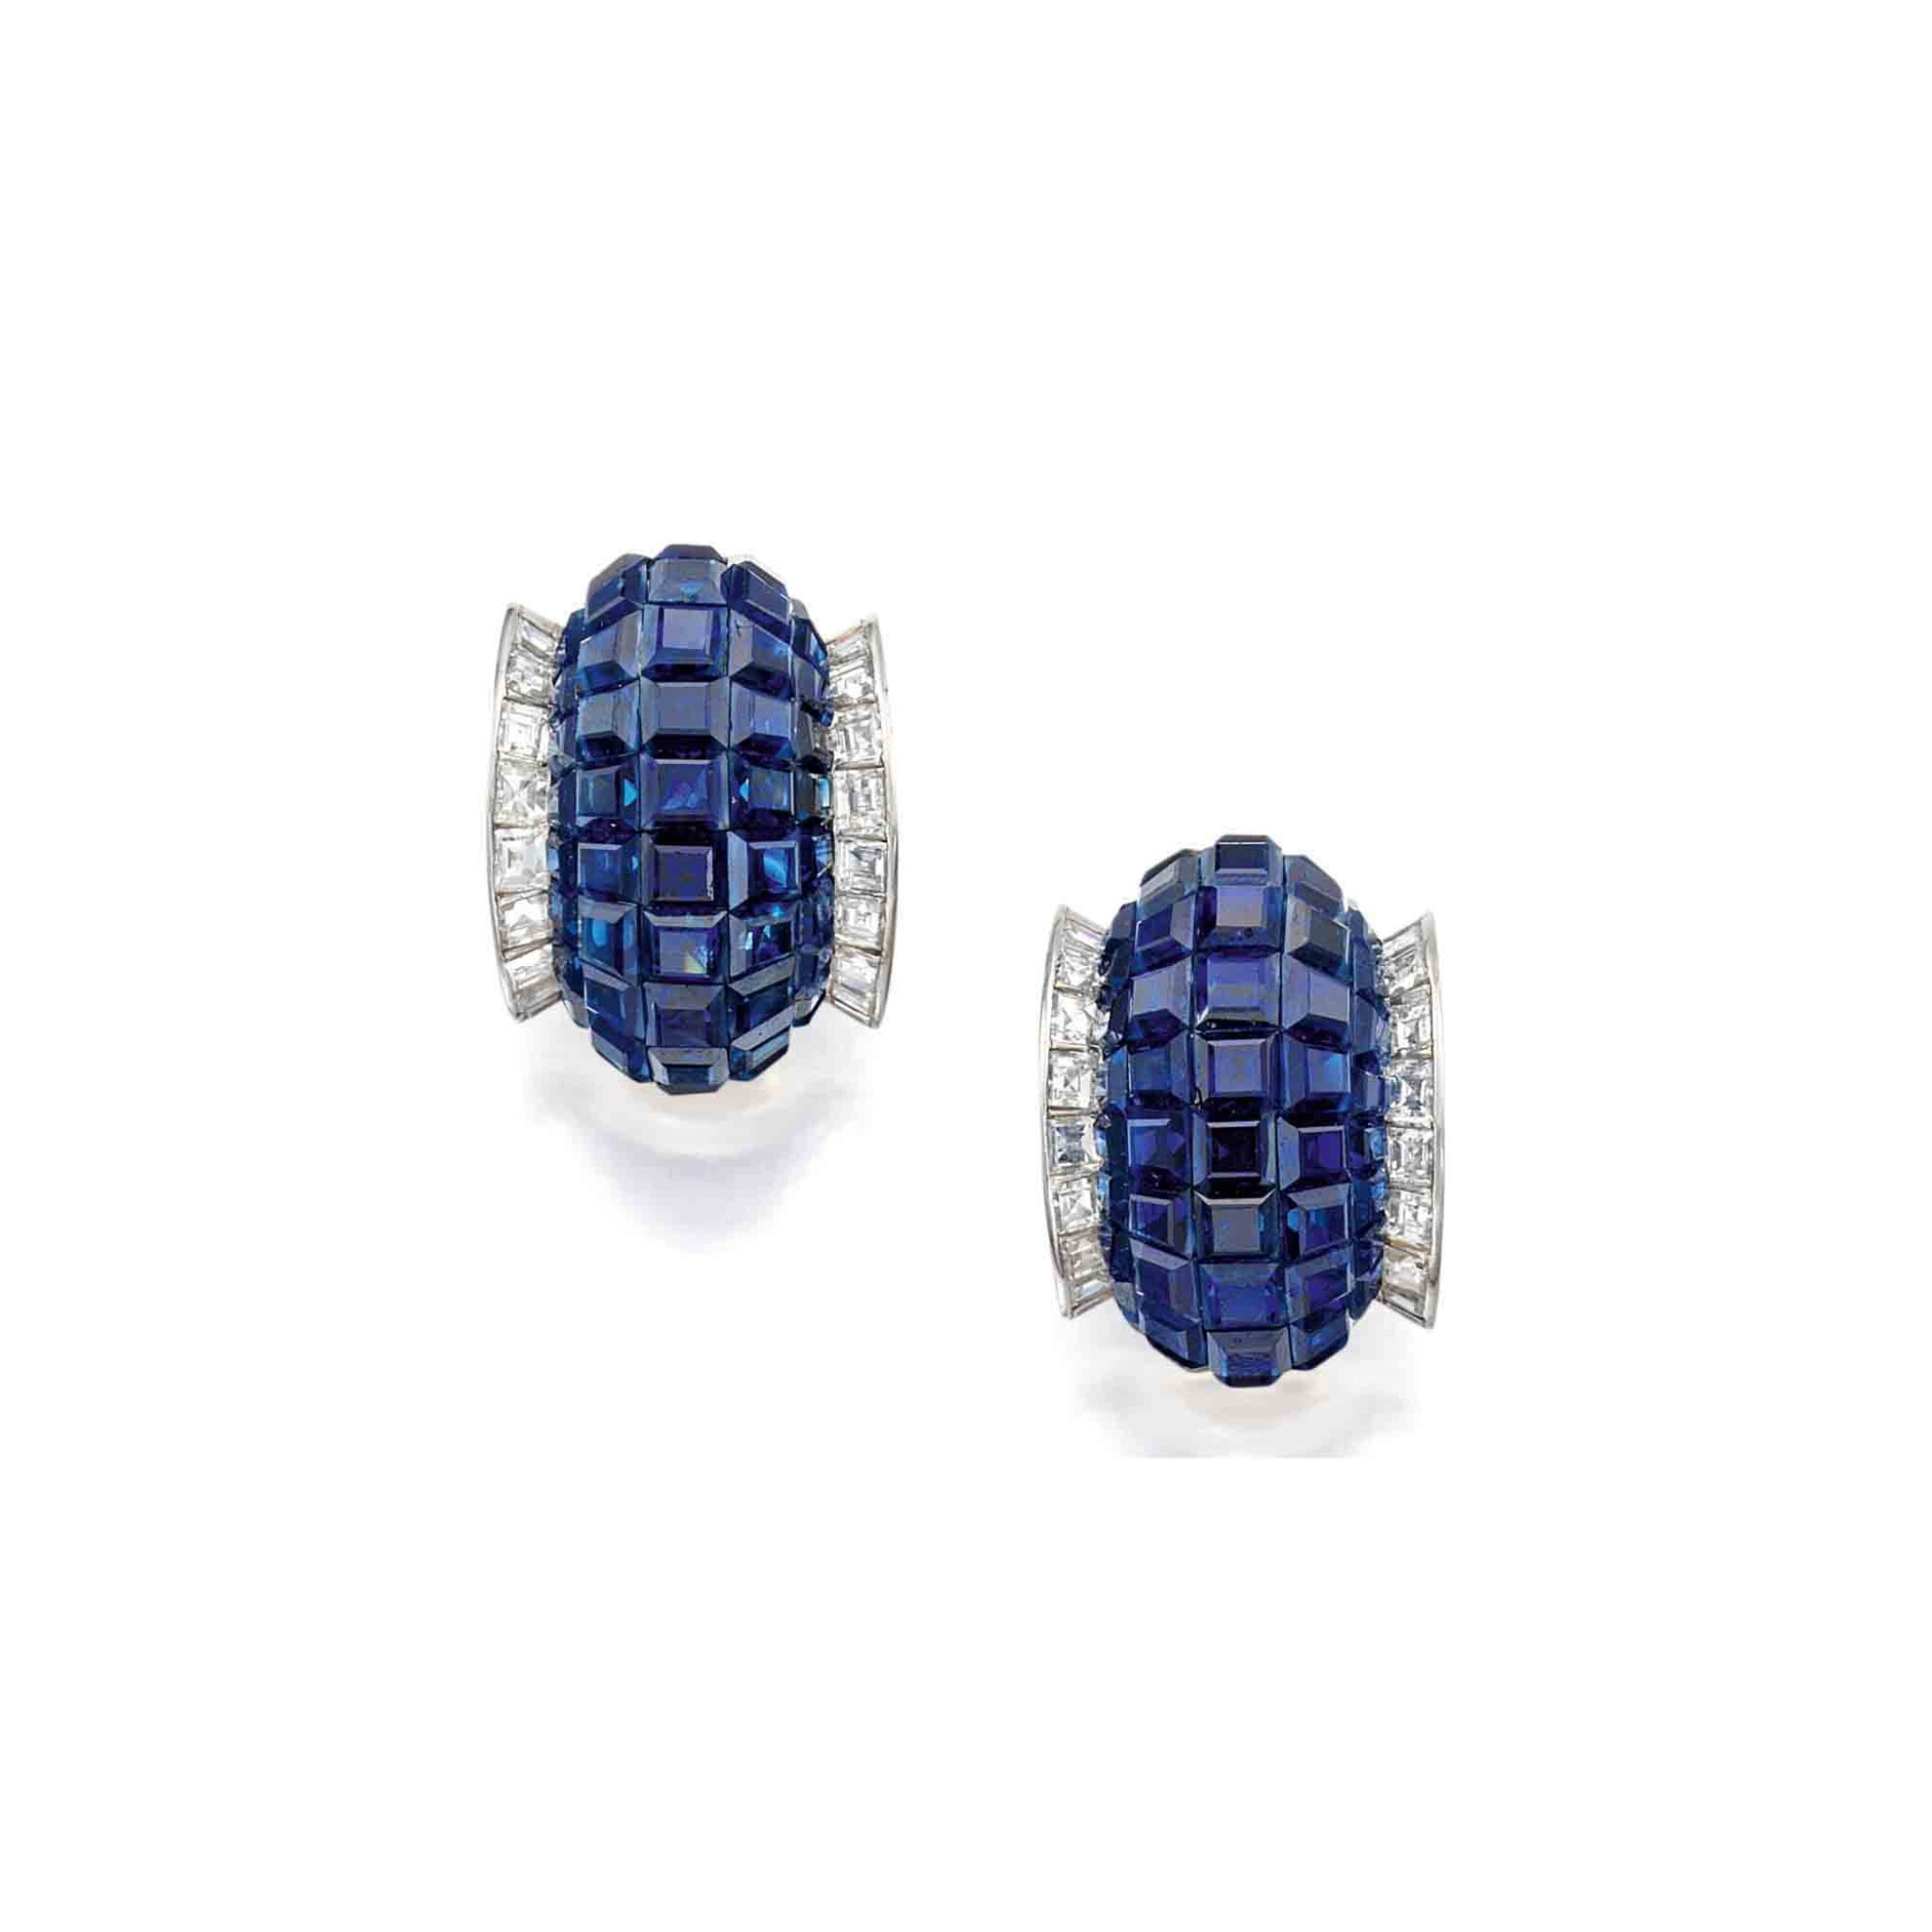 View full screen - View 1 of Lot 43. Van Cleef & Arpels [ 梵克雅寶] | Pair of Sapphire and Diamond 'Mystery-Set' Earclips [藍寶石配鑽石「Mystery-Set」耳環一對].